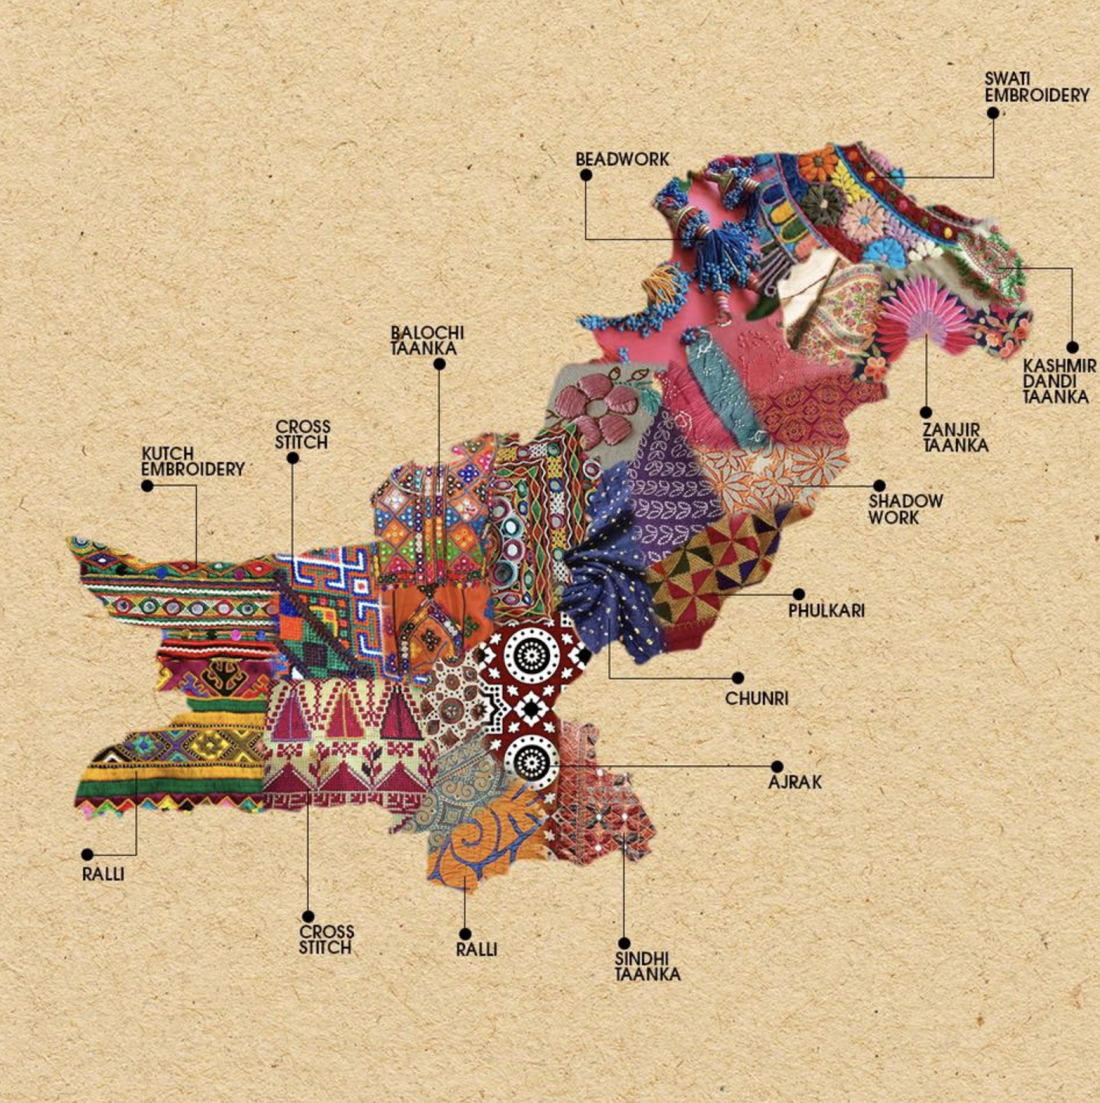 India Map 2017.Artistic Maps Of Pakistan India Show The Embroidery Techniques Of